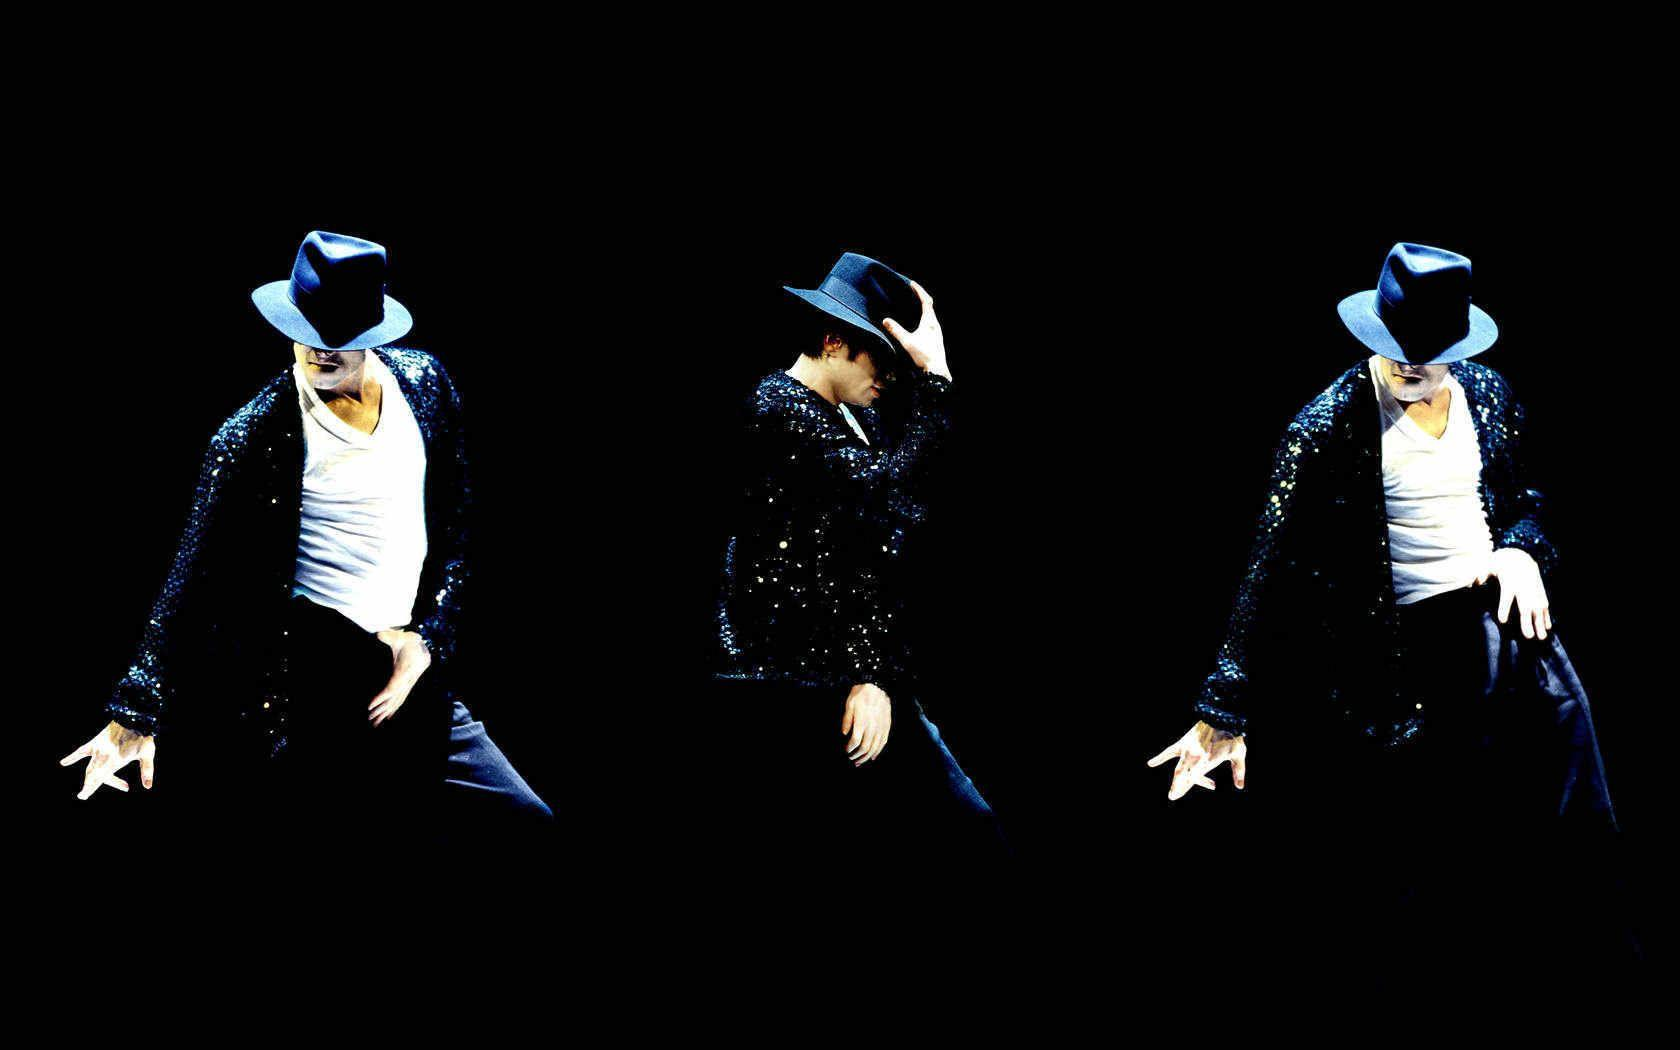 michael-jackson-wallpaper - Free wallpaper full hd 1080p, high ...